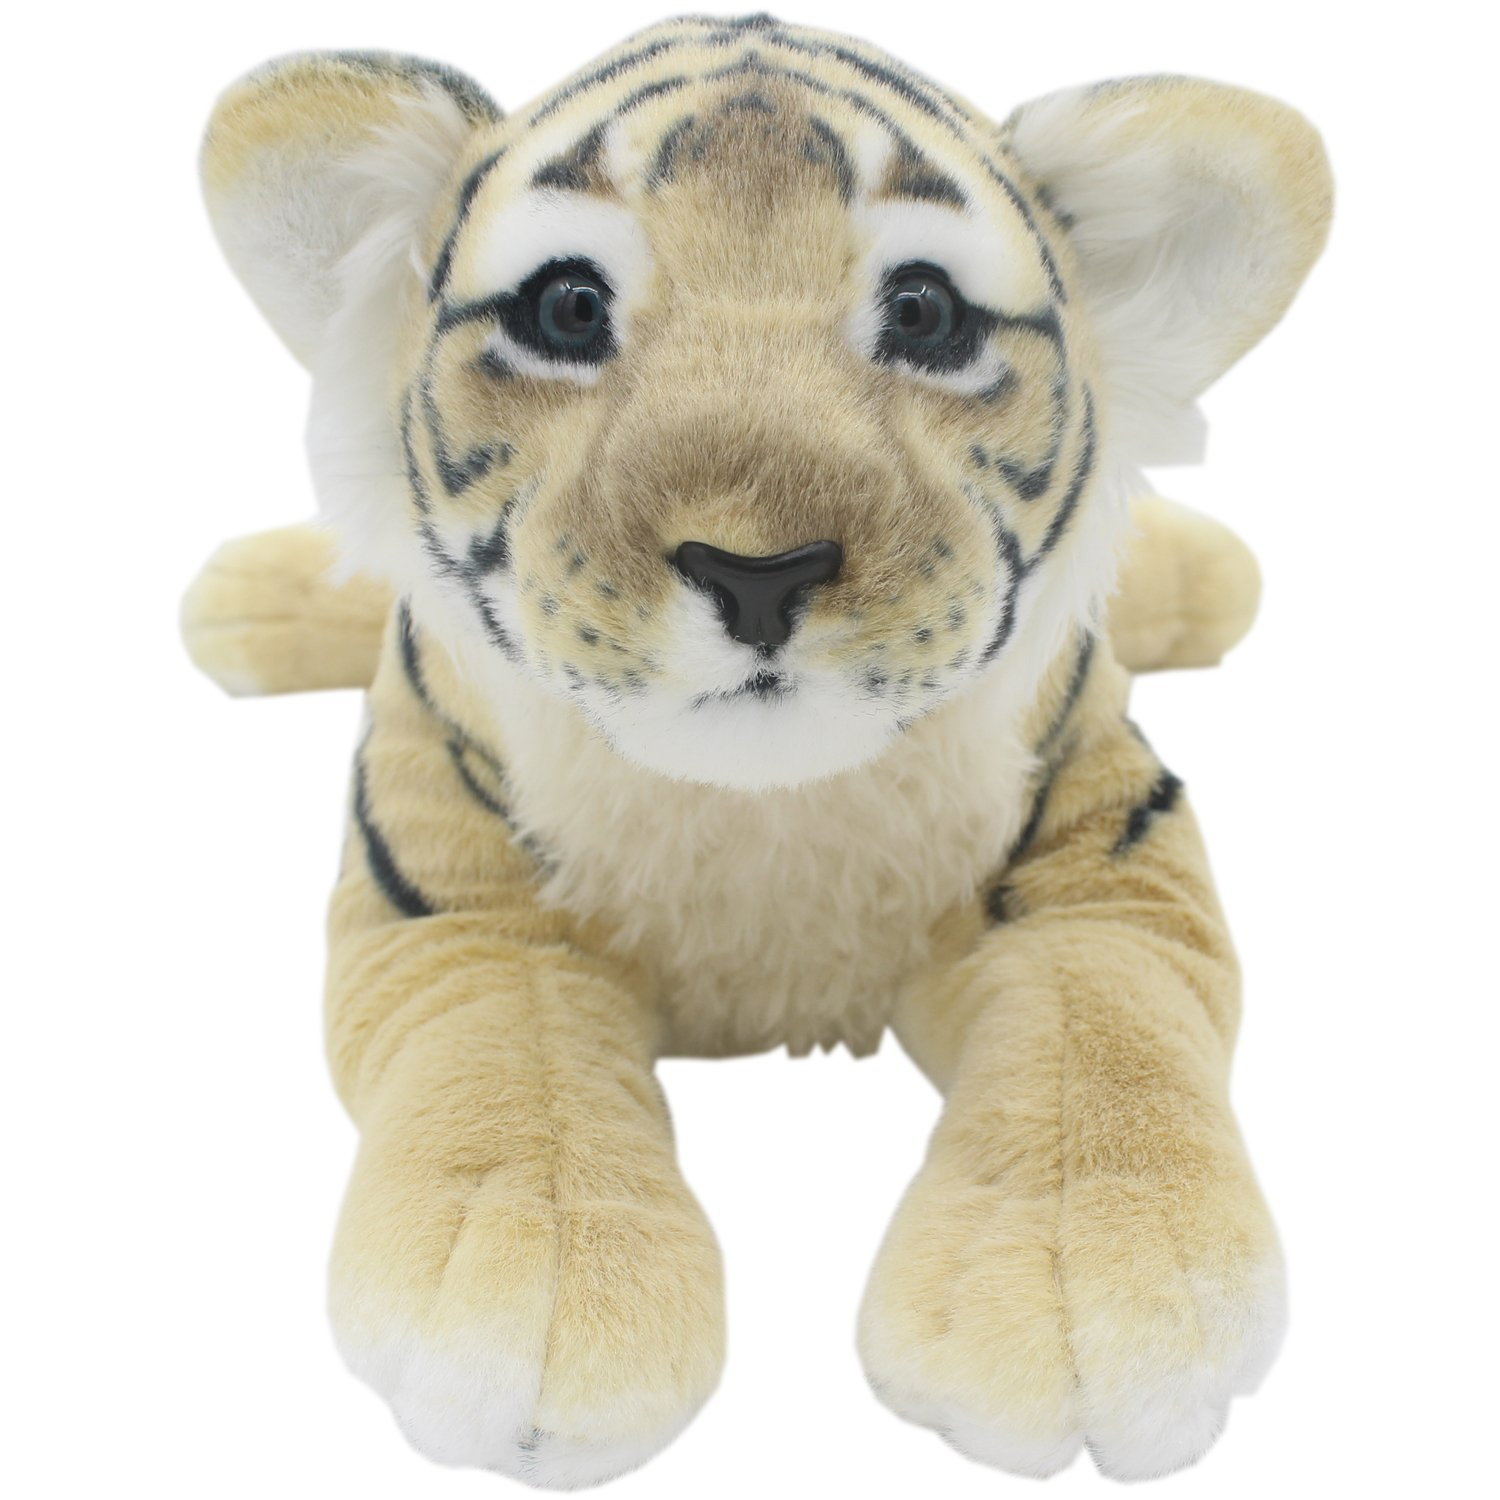 TAGLN Realistic the Jungle Animals Stuffed Plush Lifelike Toys Pillows (16 Inch Brown Tiger Cubs)